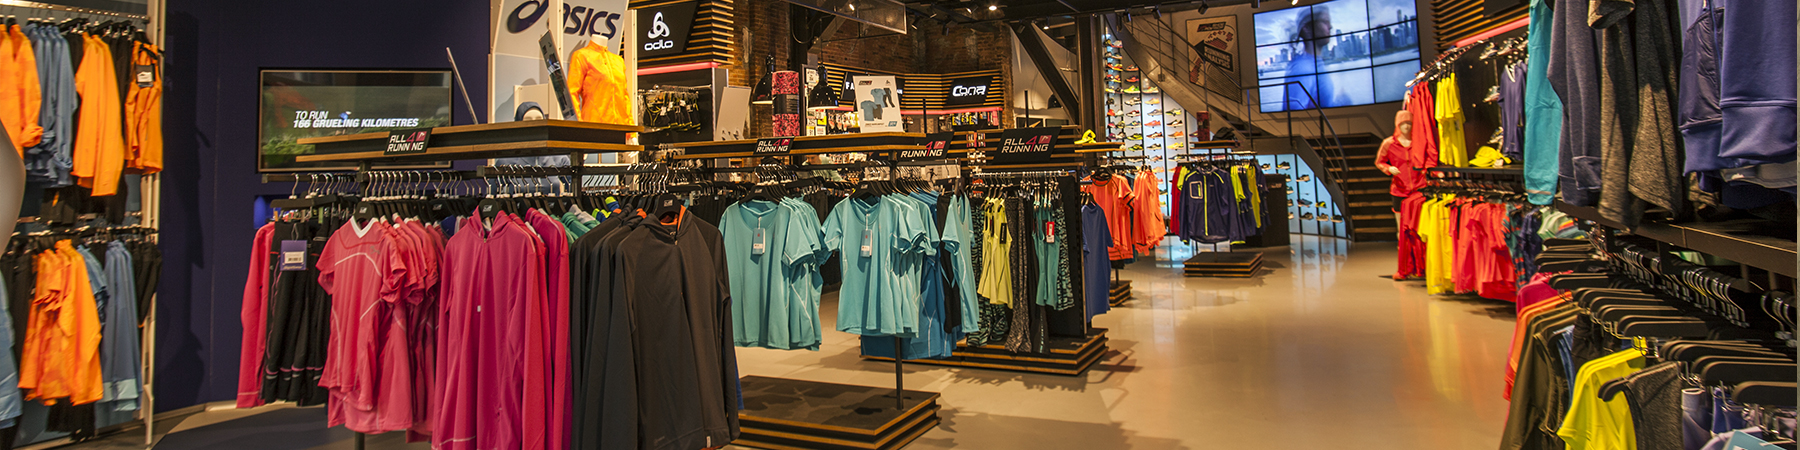 All4running Flasgship Store Alkmaar